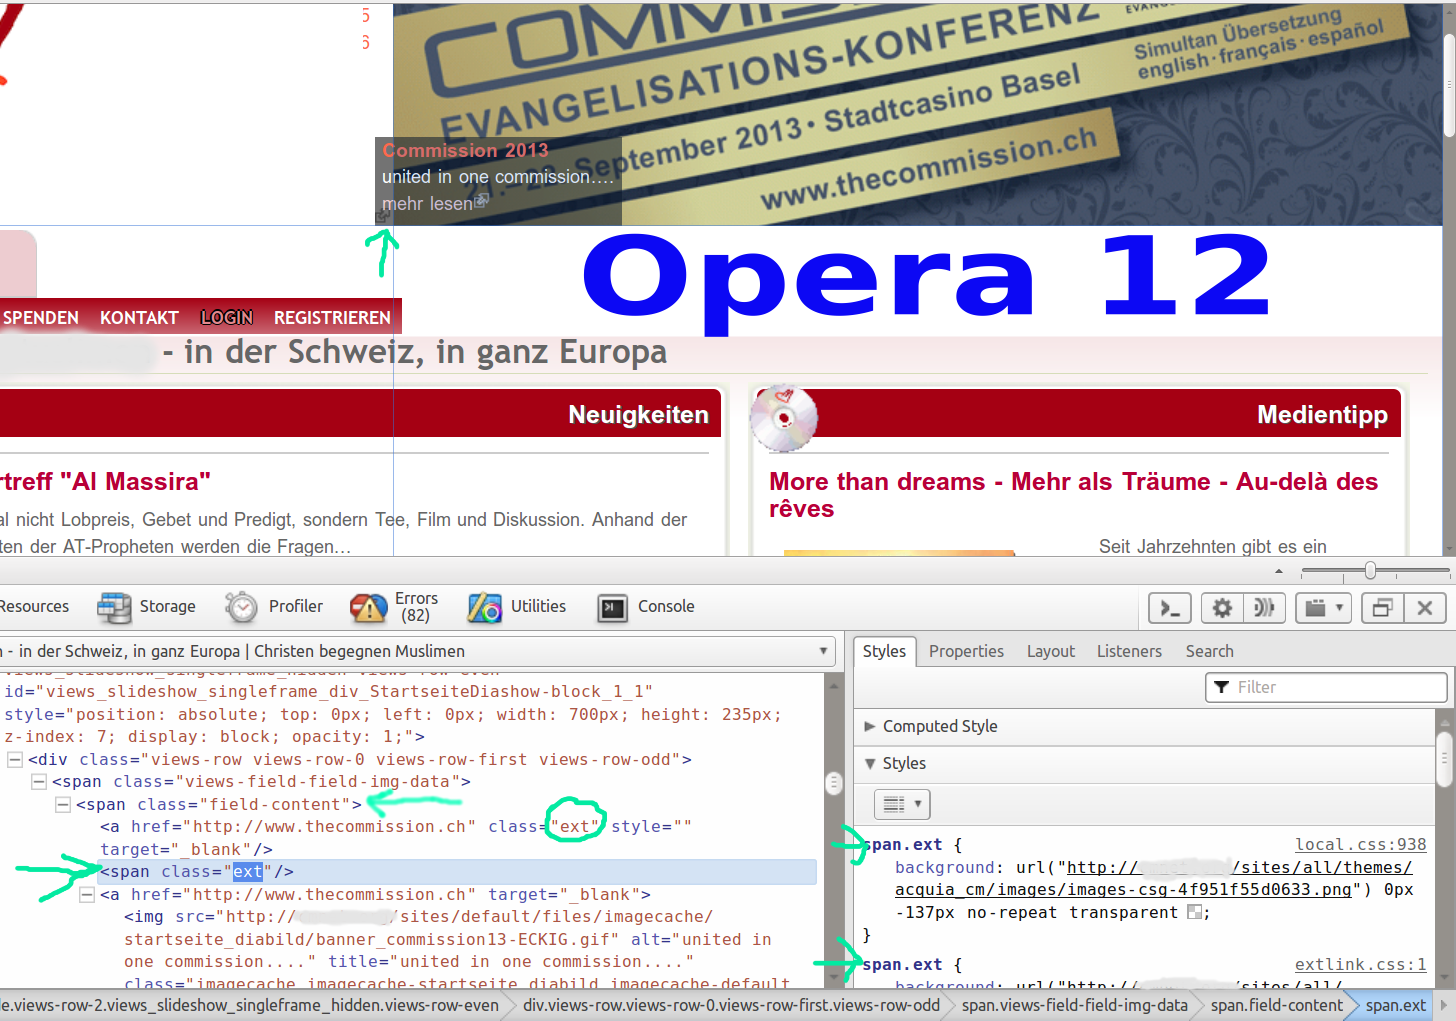 46-External_links_icon_shows_in_Opera_12.png